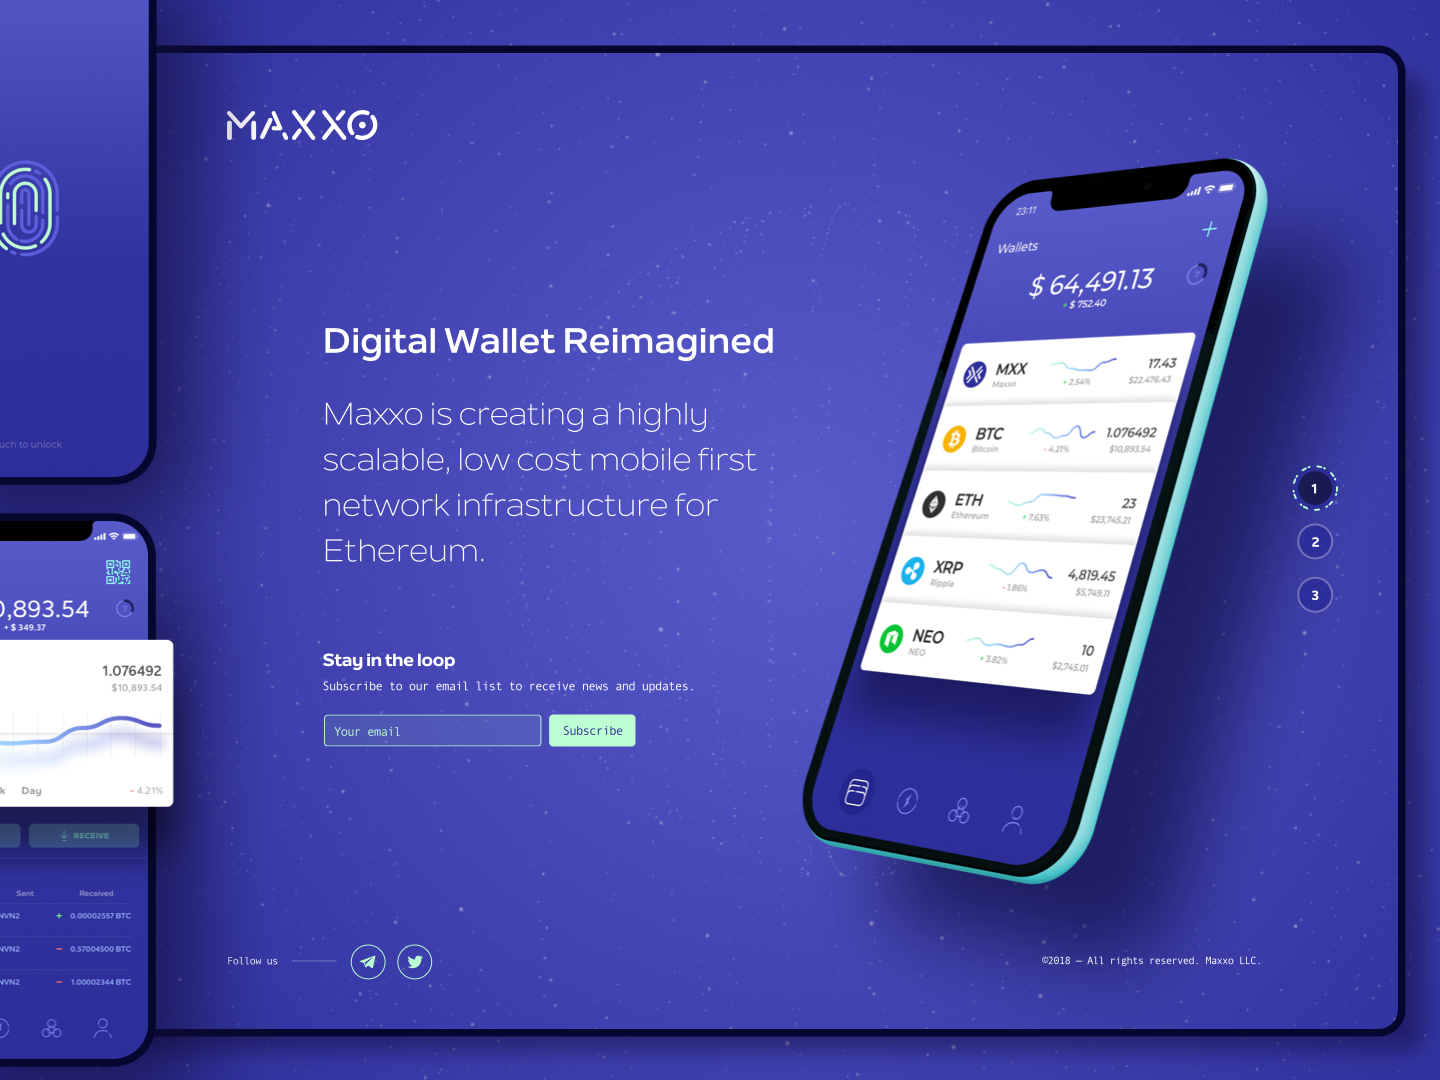 Maxxo Landing Page and Mobile Application UX and Design crypto dashboard crypto wallet cryptocurrency landing page mobile app design graphic minimal clean modern purple design